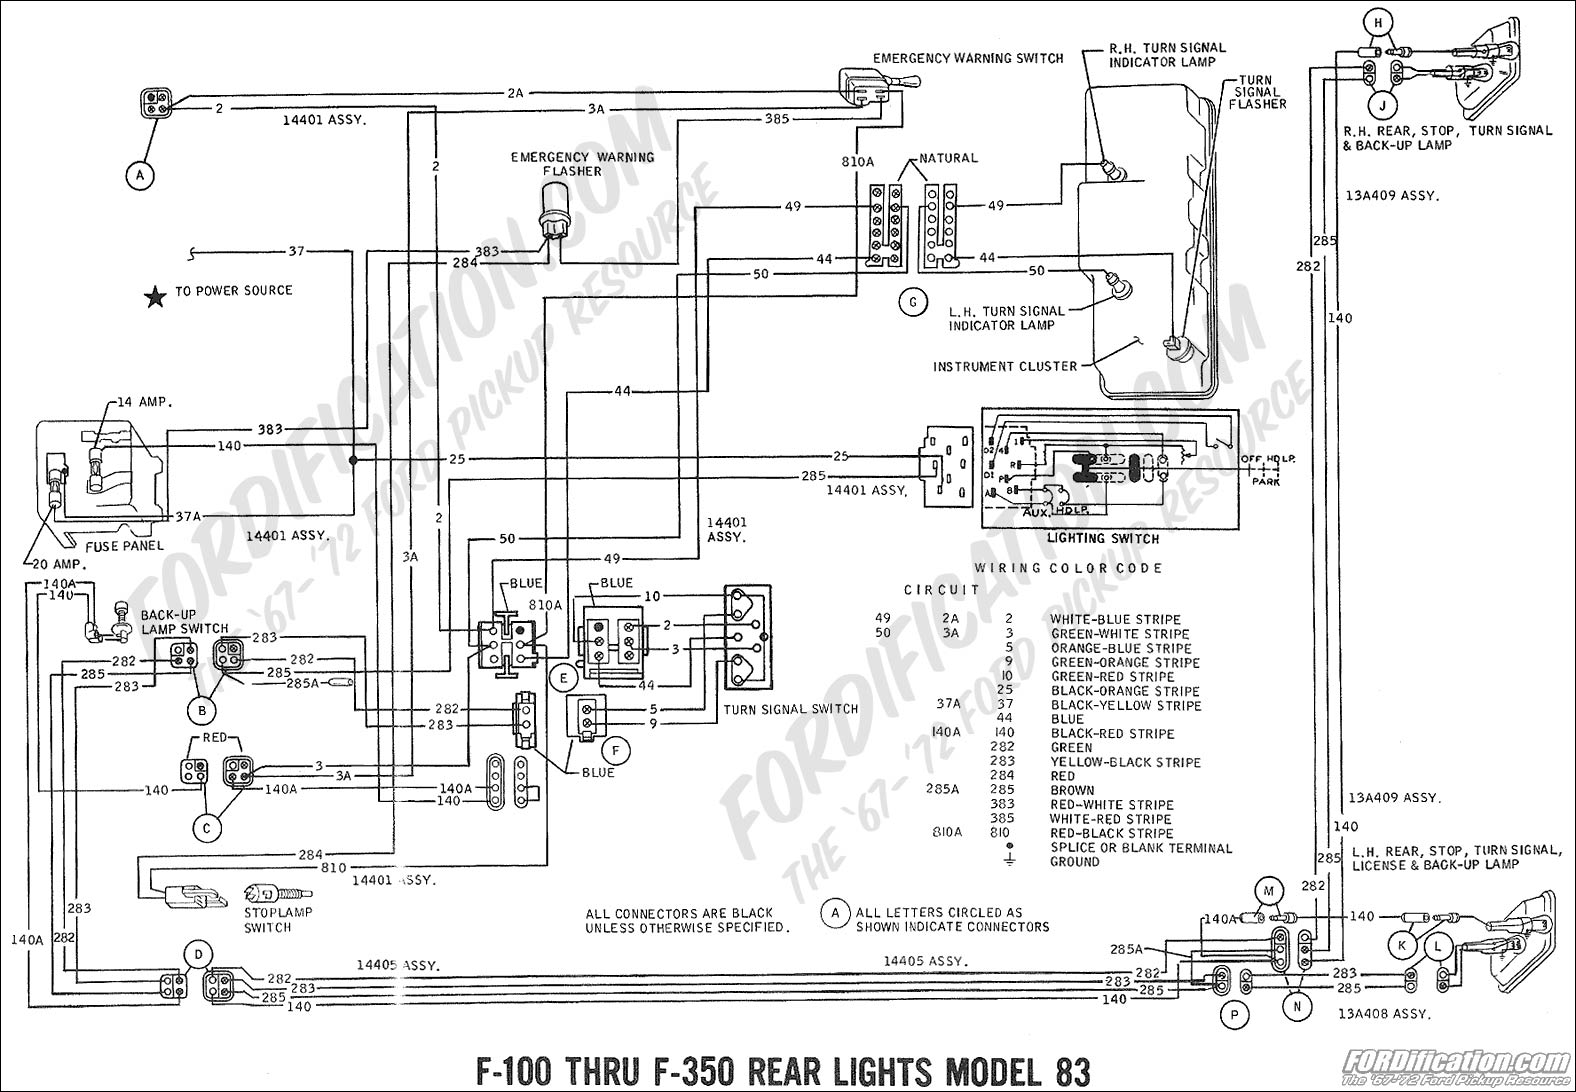 ford truck technical drawings and schematics section h wiring rh fordification com 1969 Ford F-350 Wiring Schematic Ford F-350 Wiring Schematic